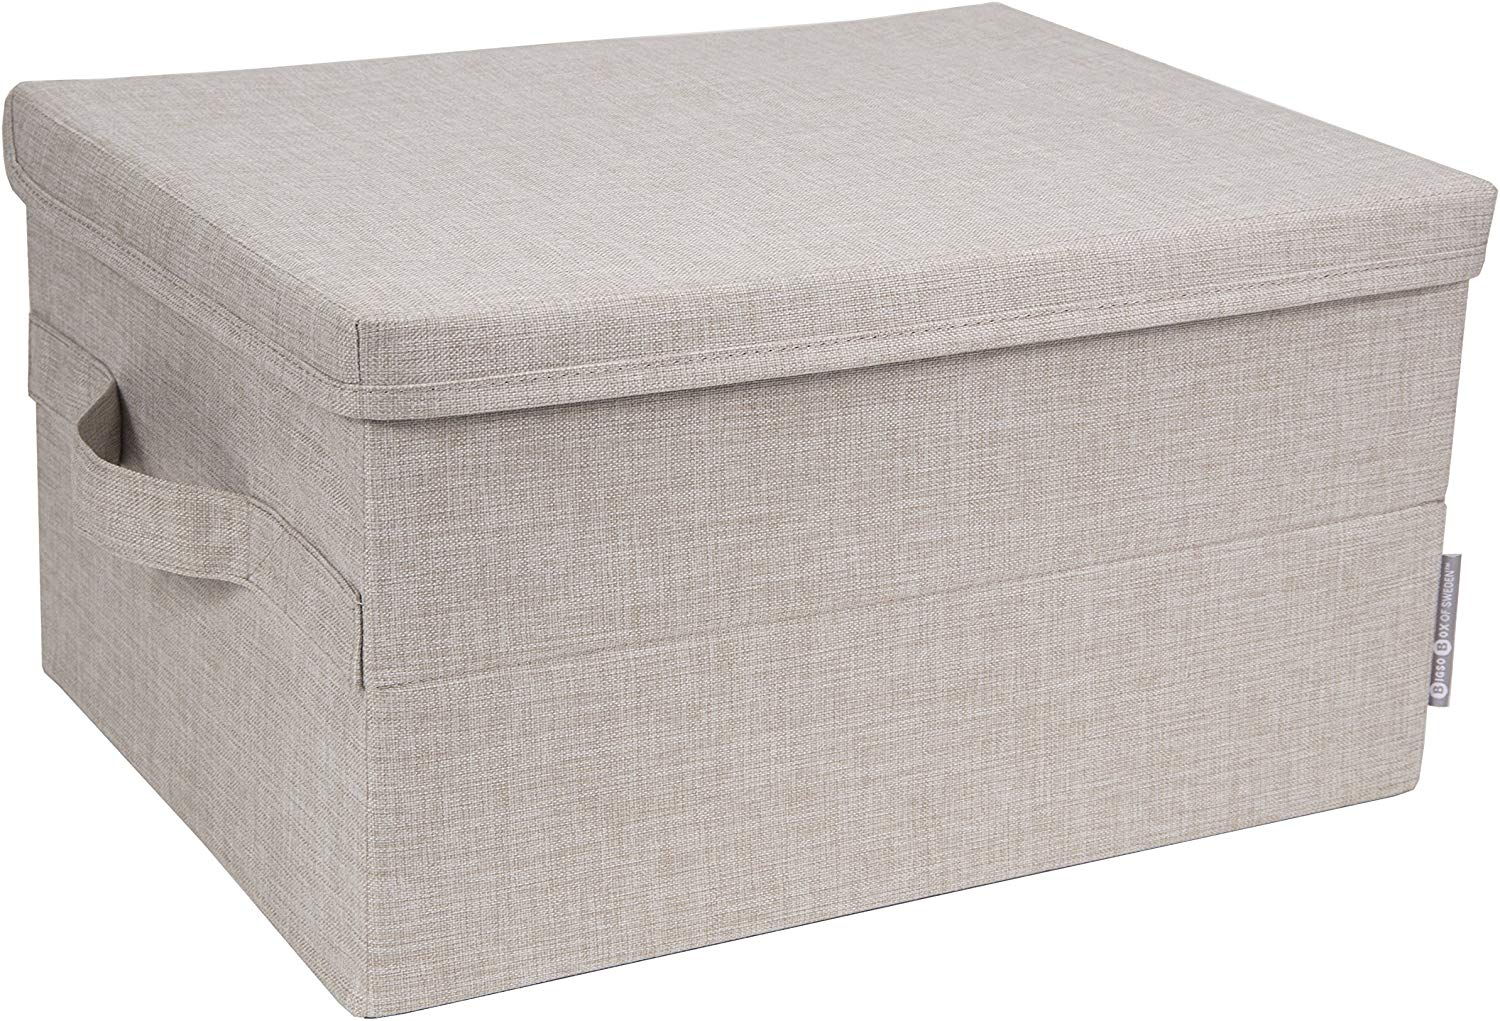 Bigso Medium Beige 12.5 Inch x 16.25 Inch Soft Storage Box